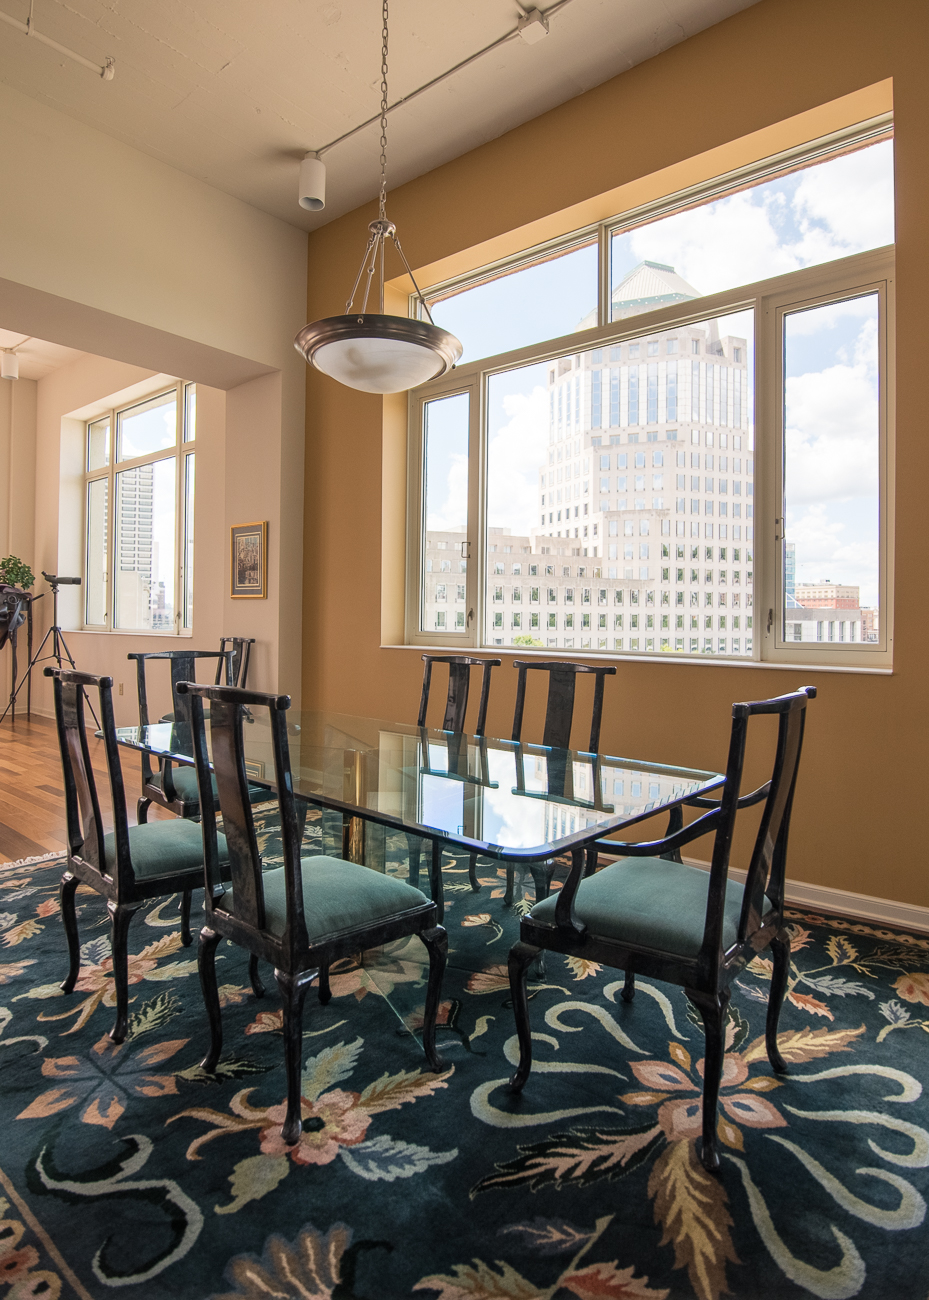 Unit #701 is currently for sale. It is a 3,132-square-foot condo with a view on the northwestern side of the building. It has two bedrooms, and three and a half bathrooms. It's listed by George Verkamp with Sibcy Cline. / Image: Phil Armstrong, Cincinnati Refined // Published: 7.31.18